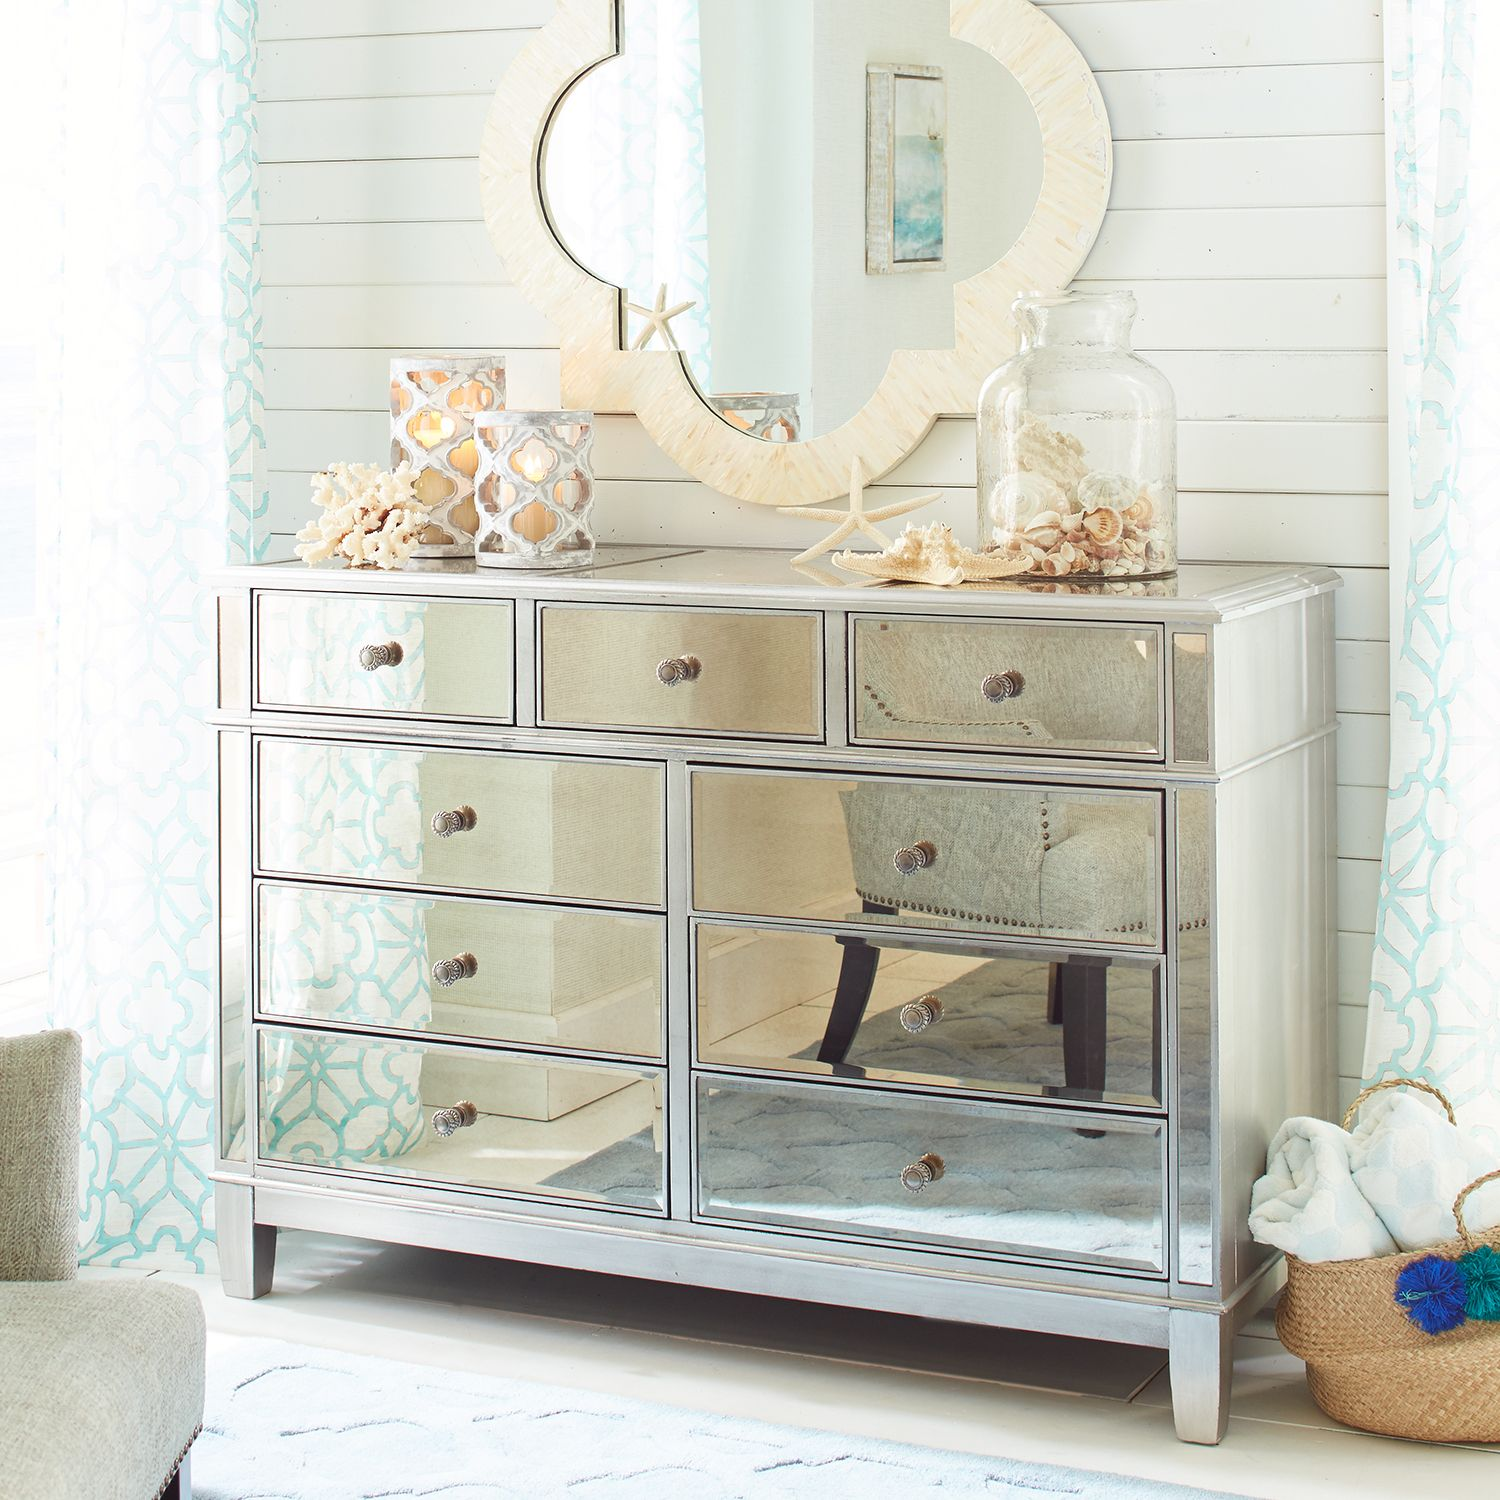 Hayworth Mirrored Silver Dresser | Pier 1